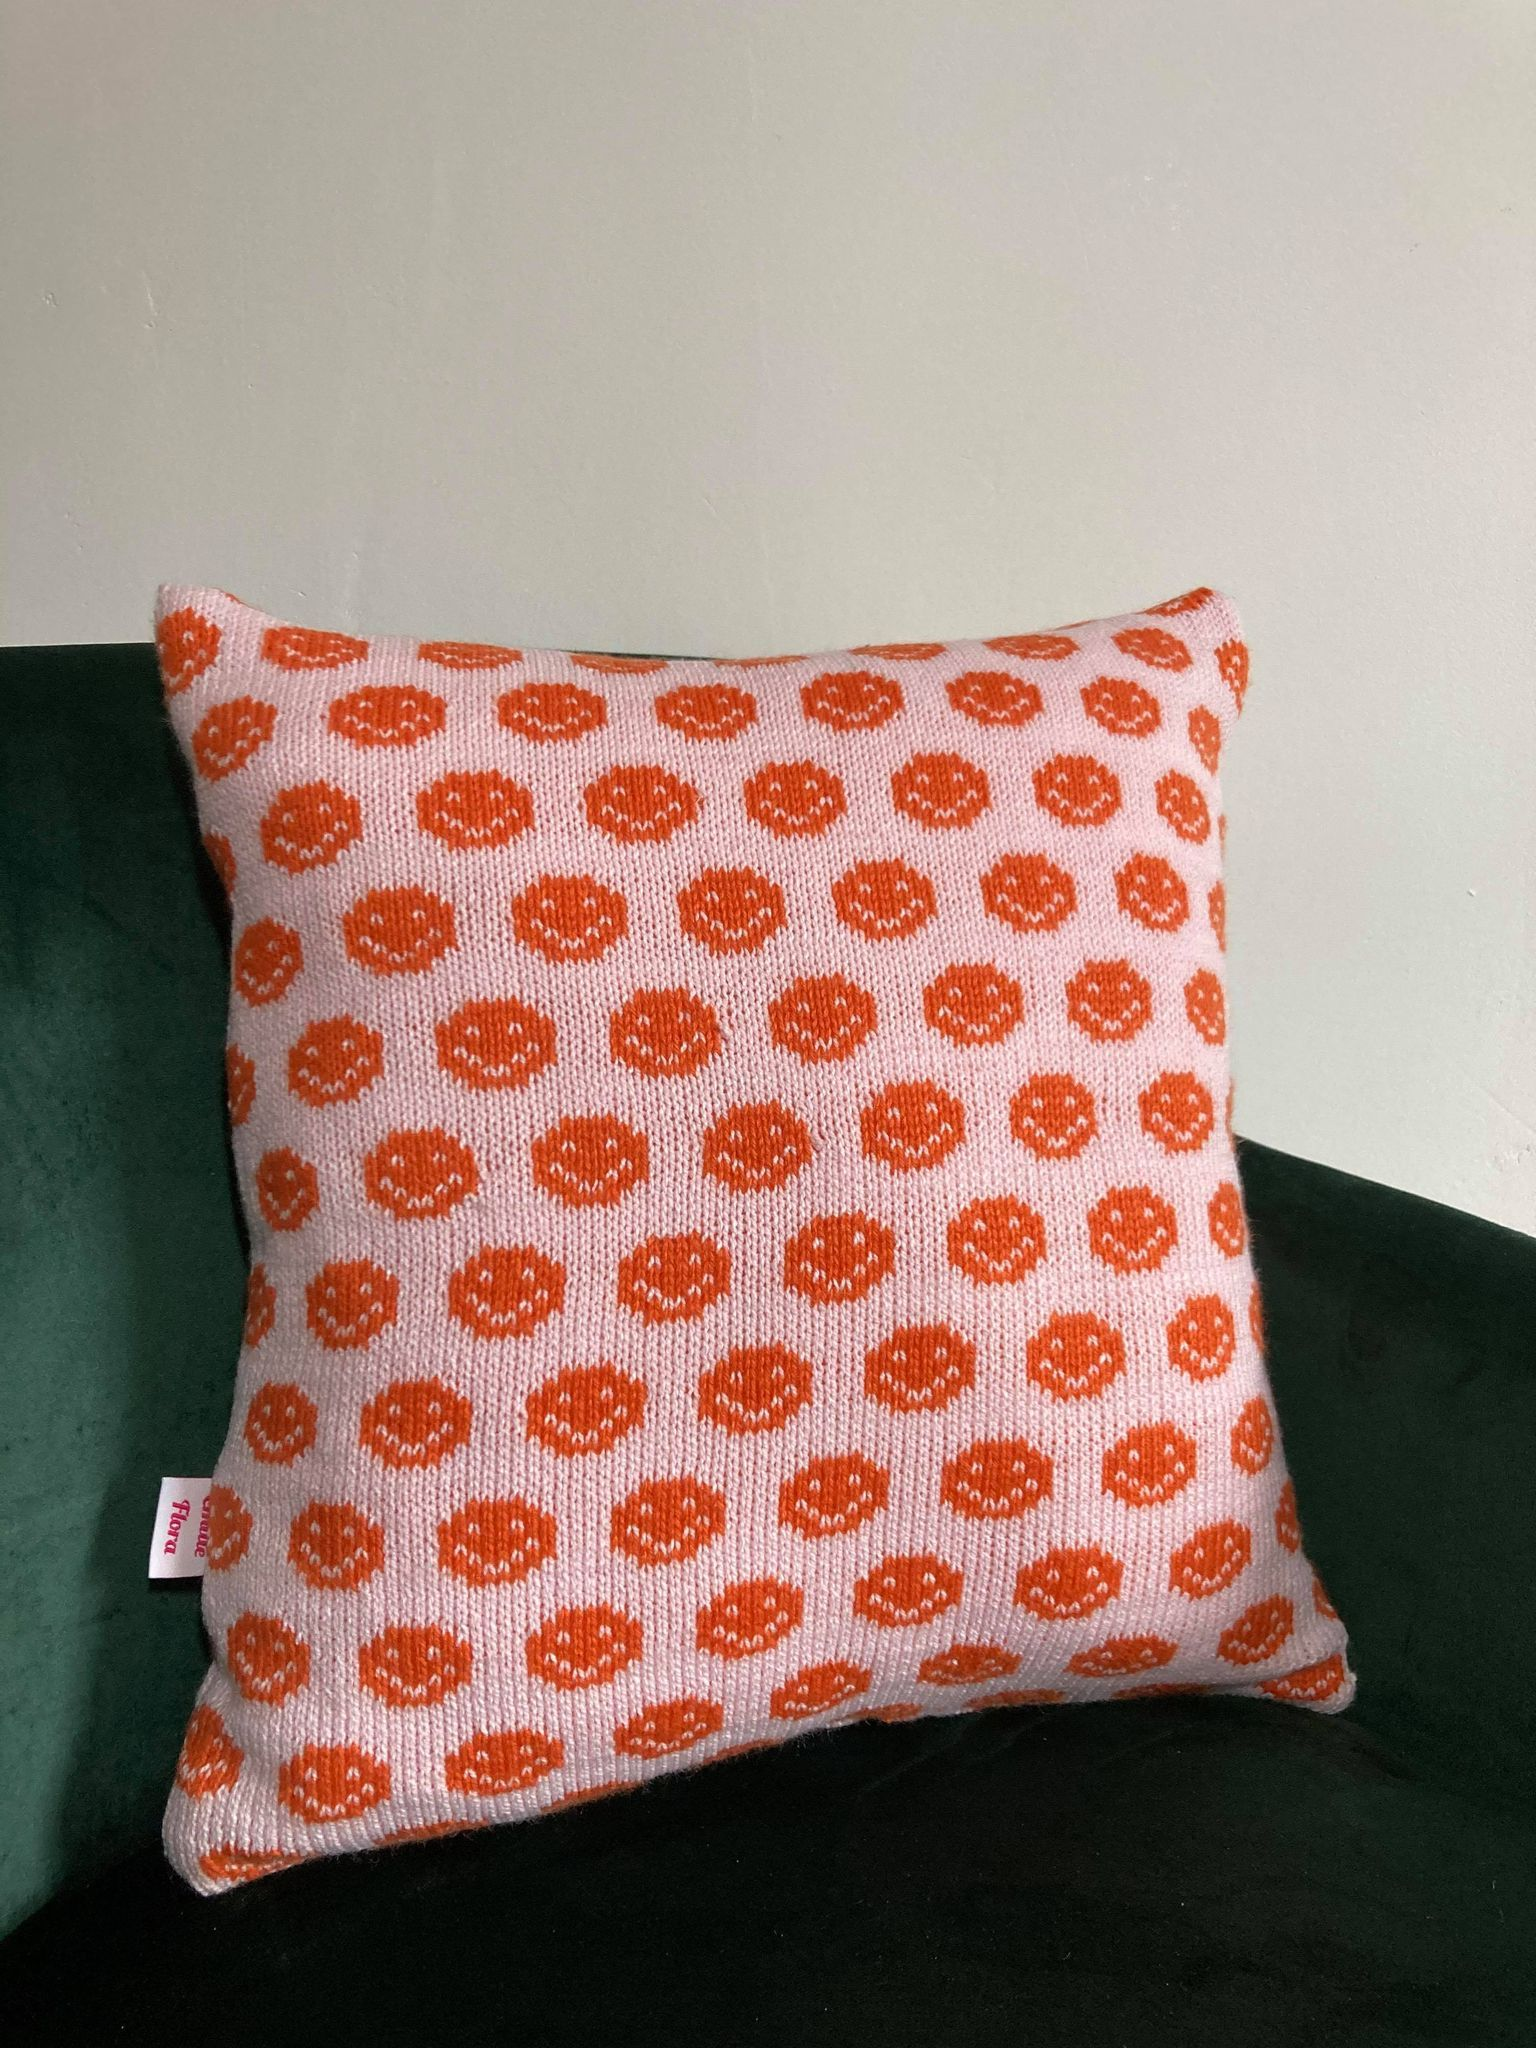 Smiley Cushion - Pale Pink and Orange